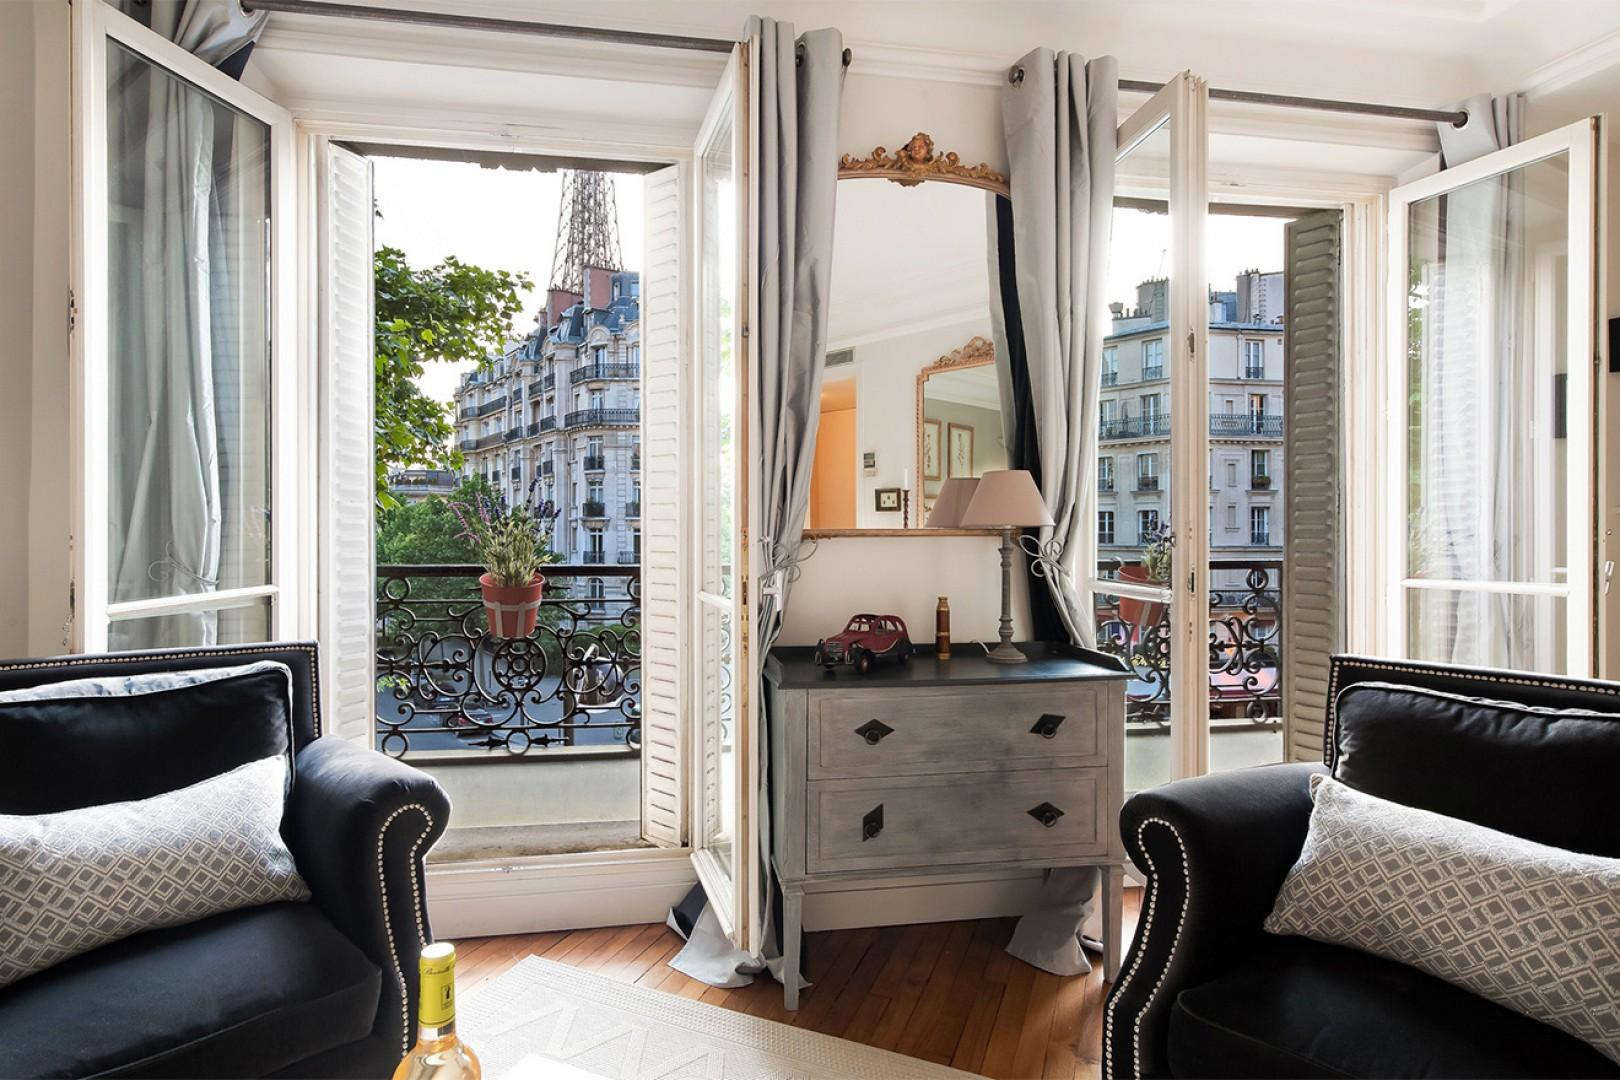 An air-conditioned apartment with views - better than a hotel!